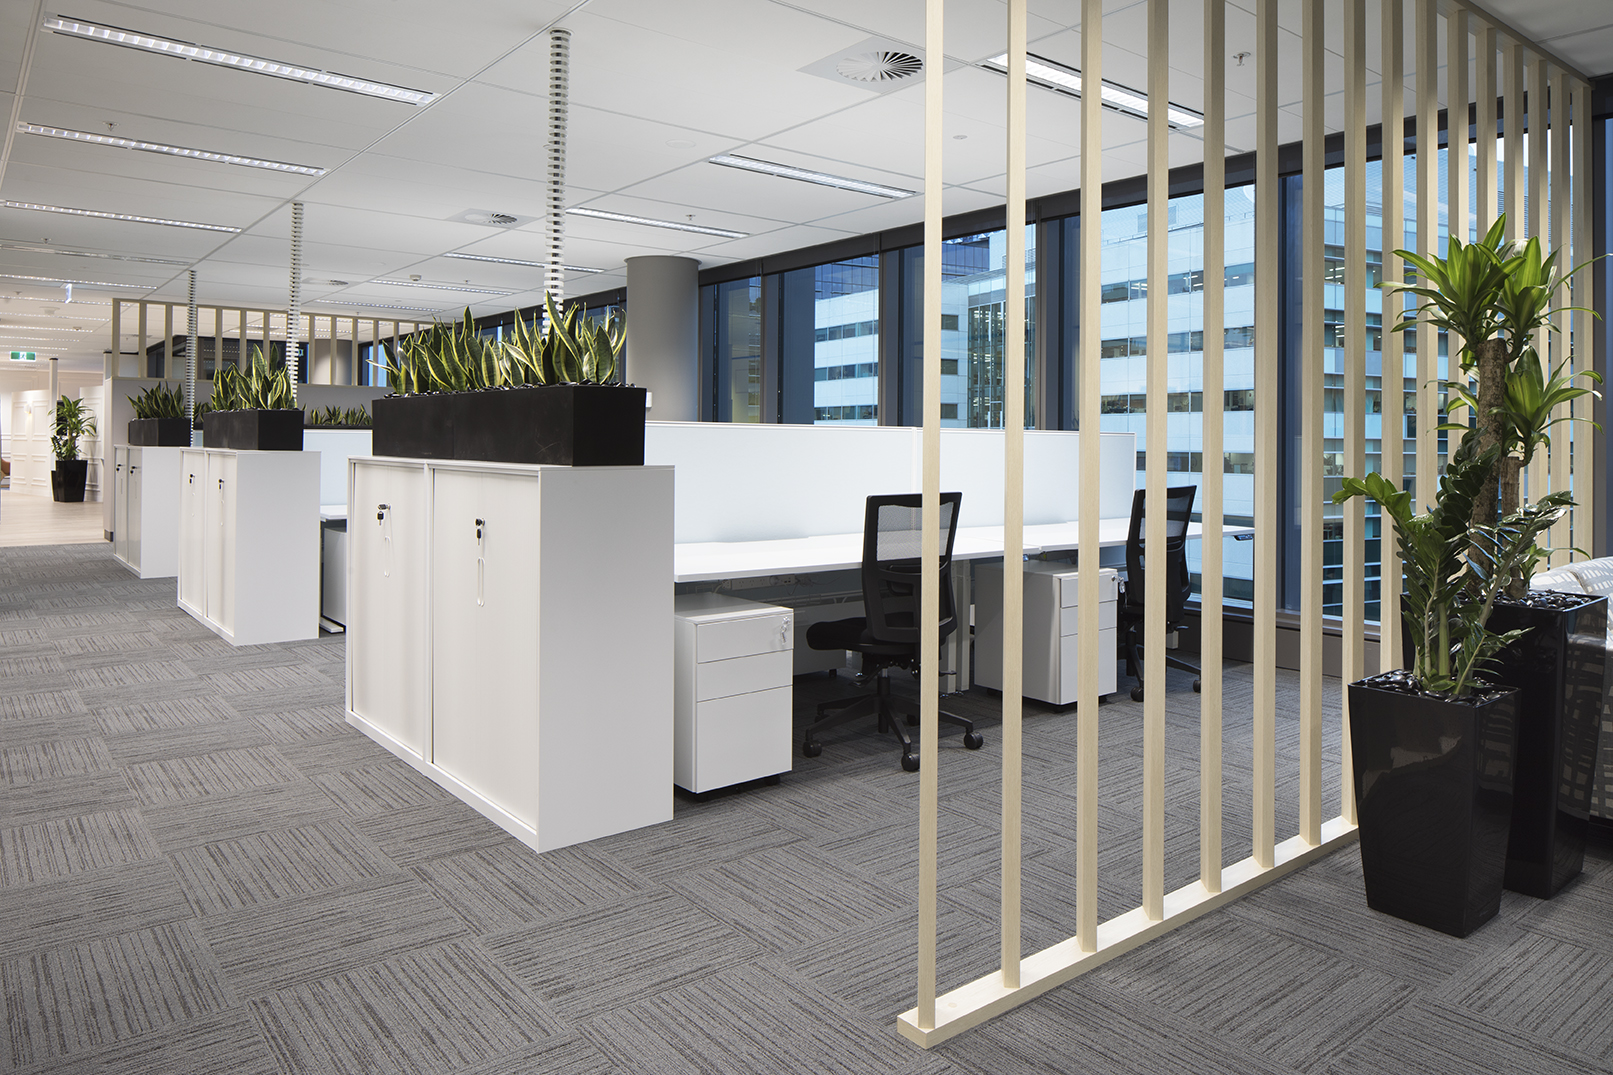 Clean, crisp office fitouts, with planter boxes used to enhance privacy.